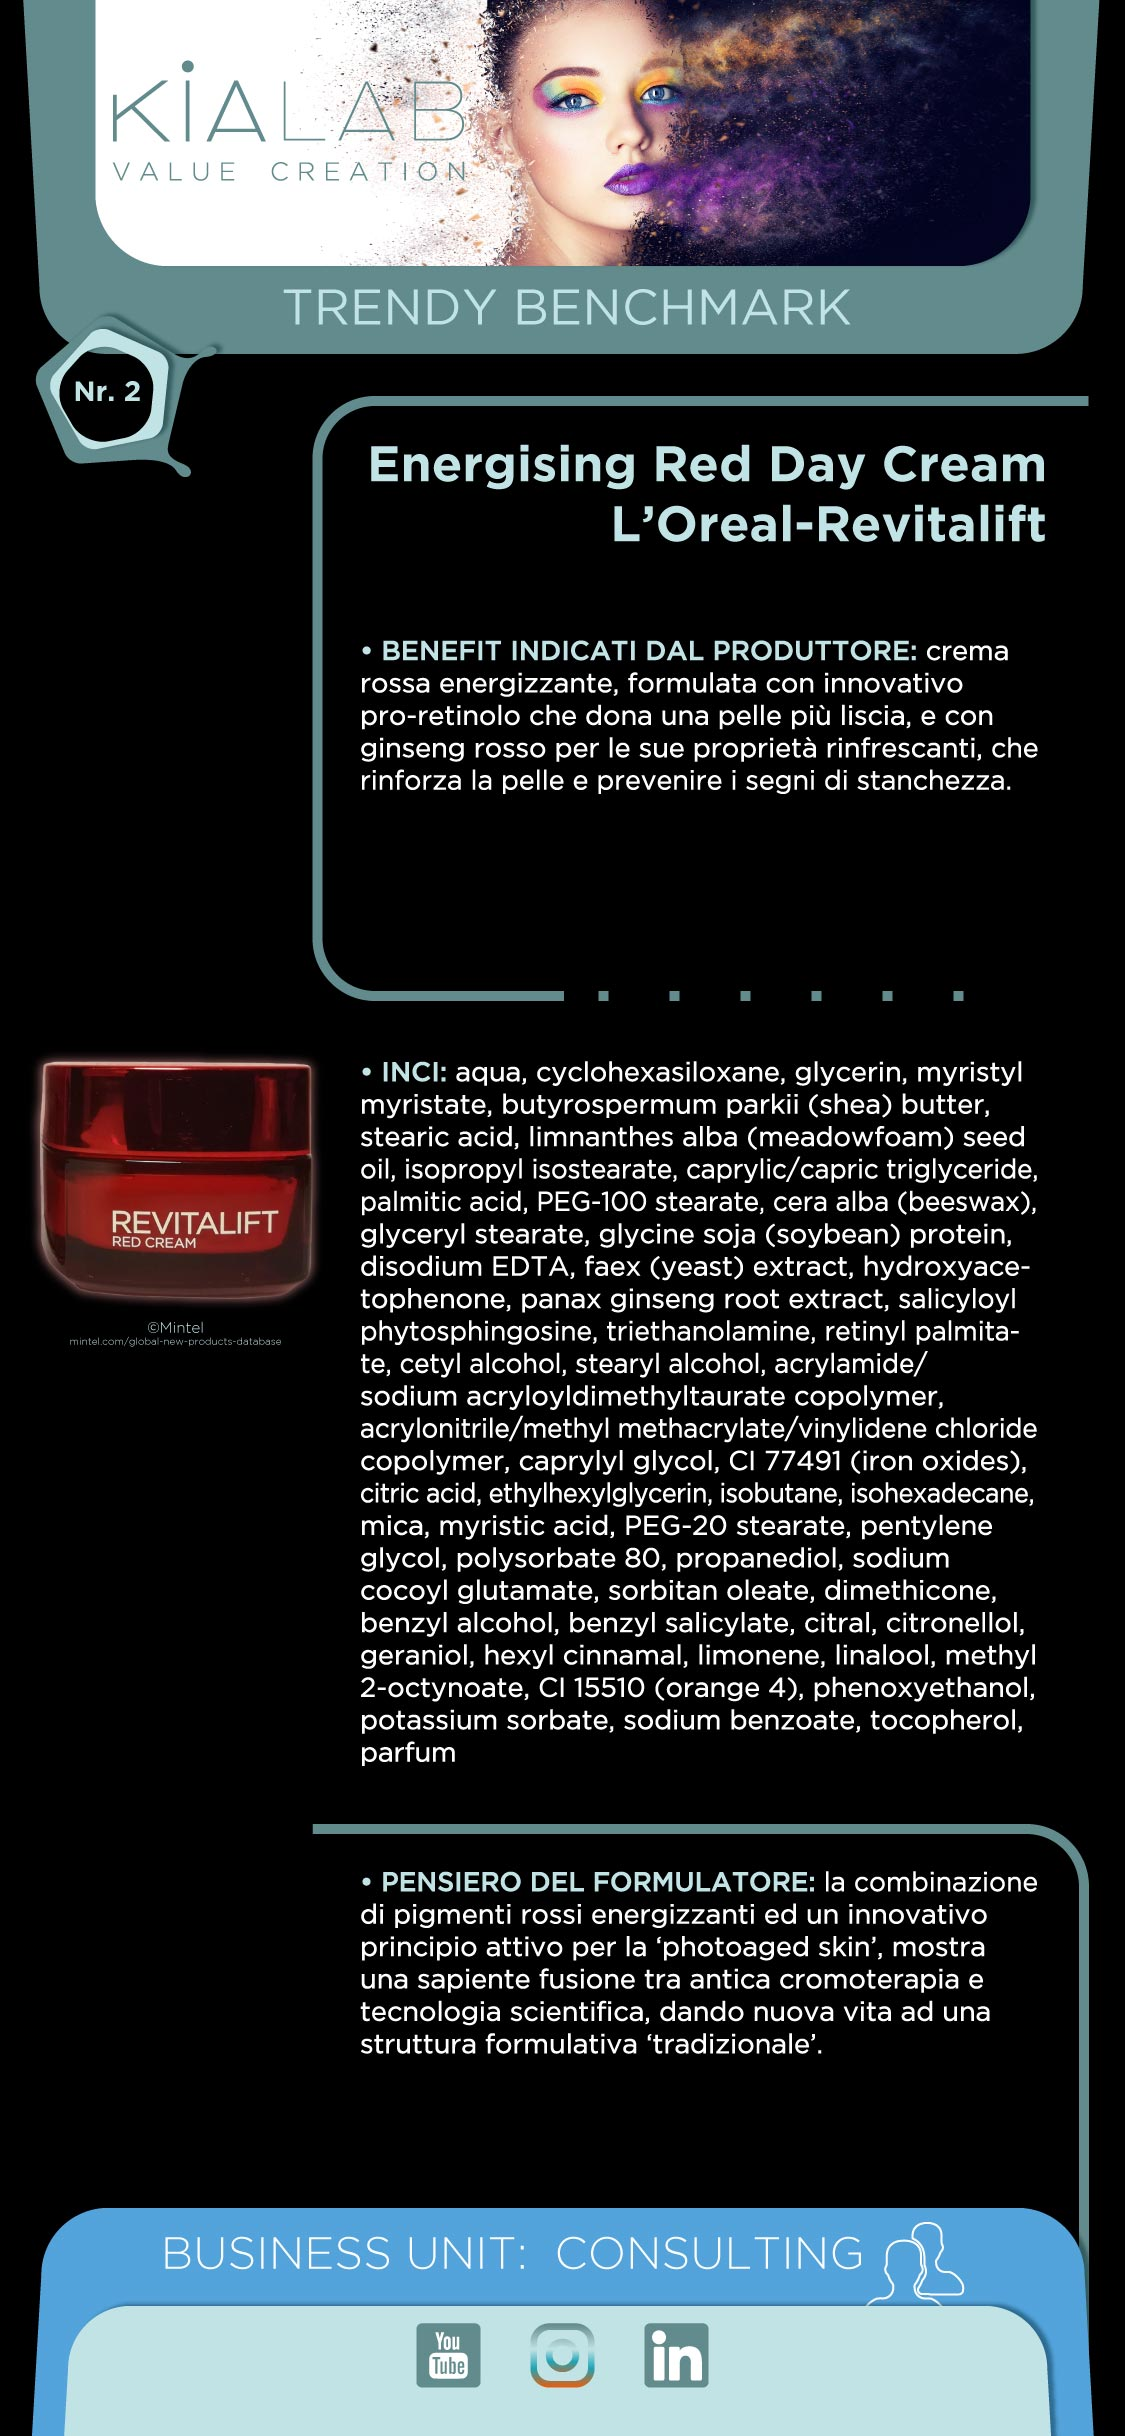 Trendy Benchmark Kialab: Energising Red Day Cream L'Oreal-Revitalift